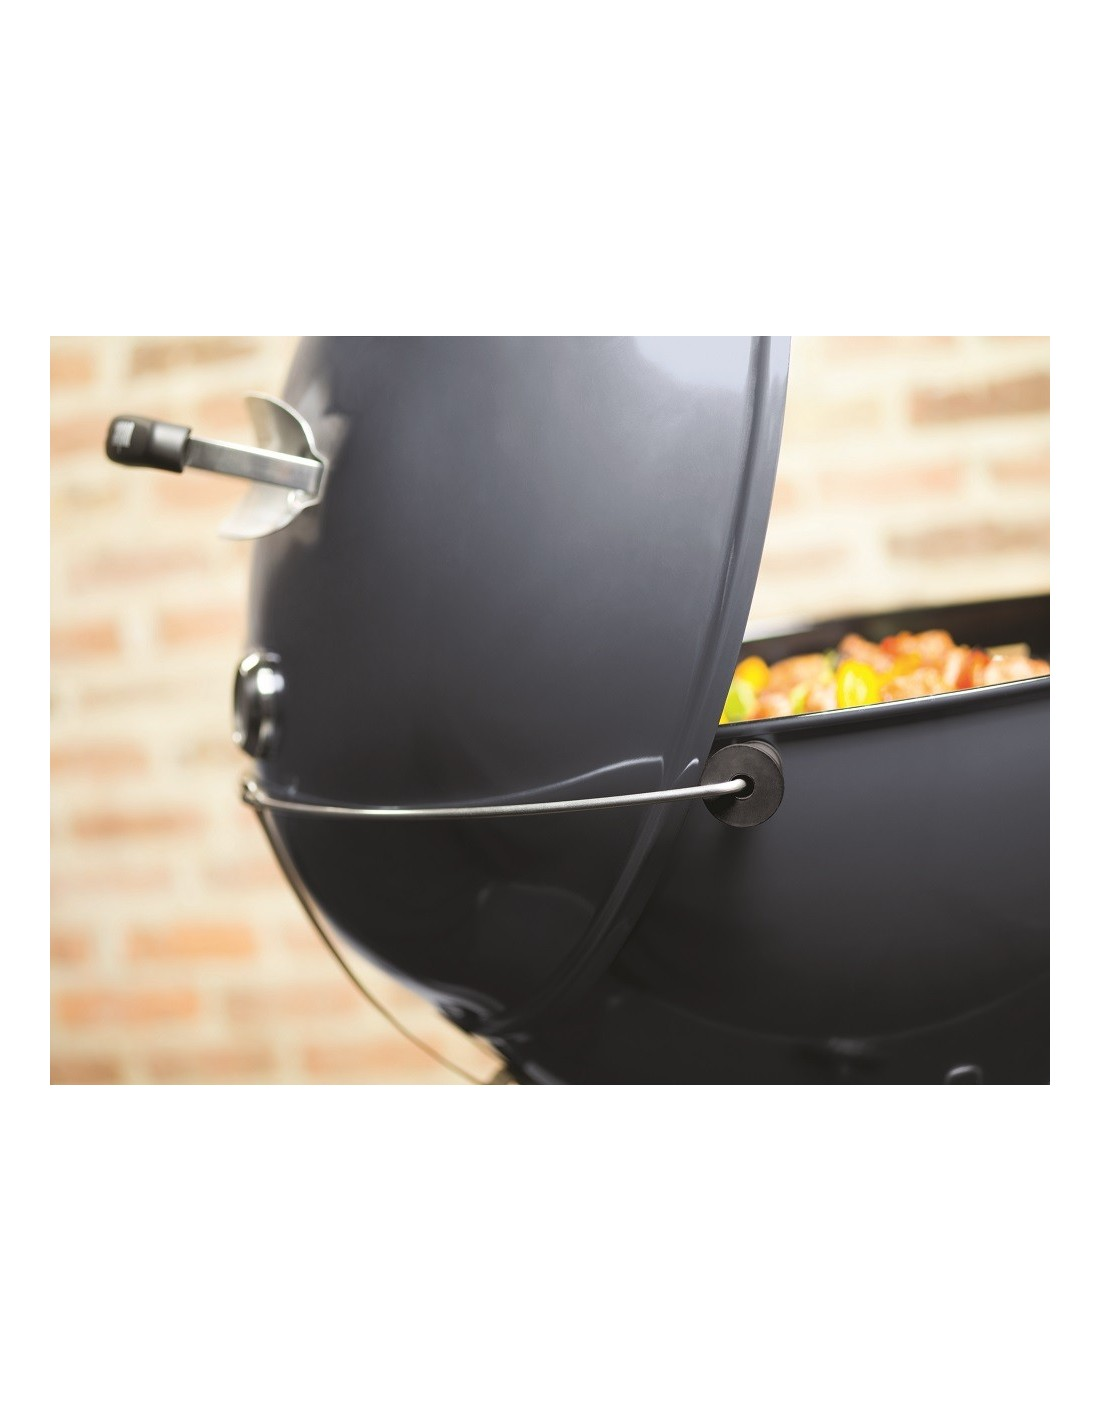 barbecue weber charbon master touch 57cm slate blue gbs. Black Bedroom Furniture Sets. Home Design Ideas